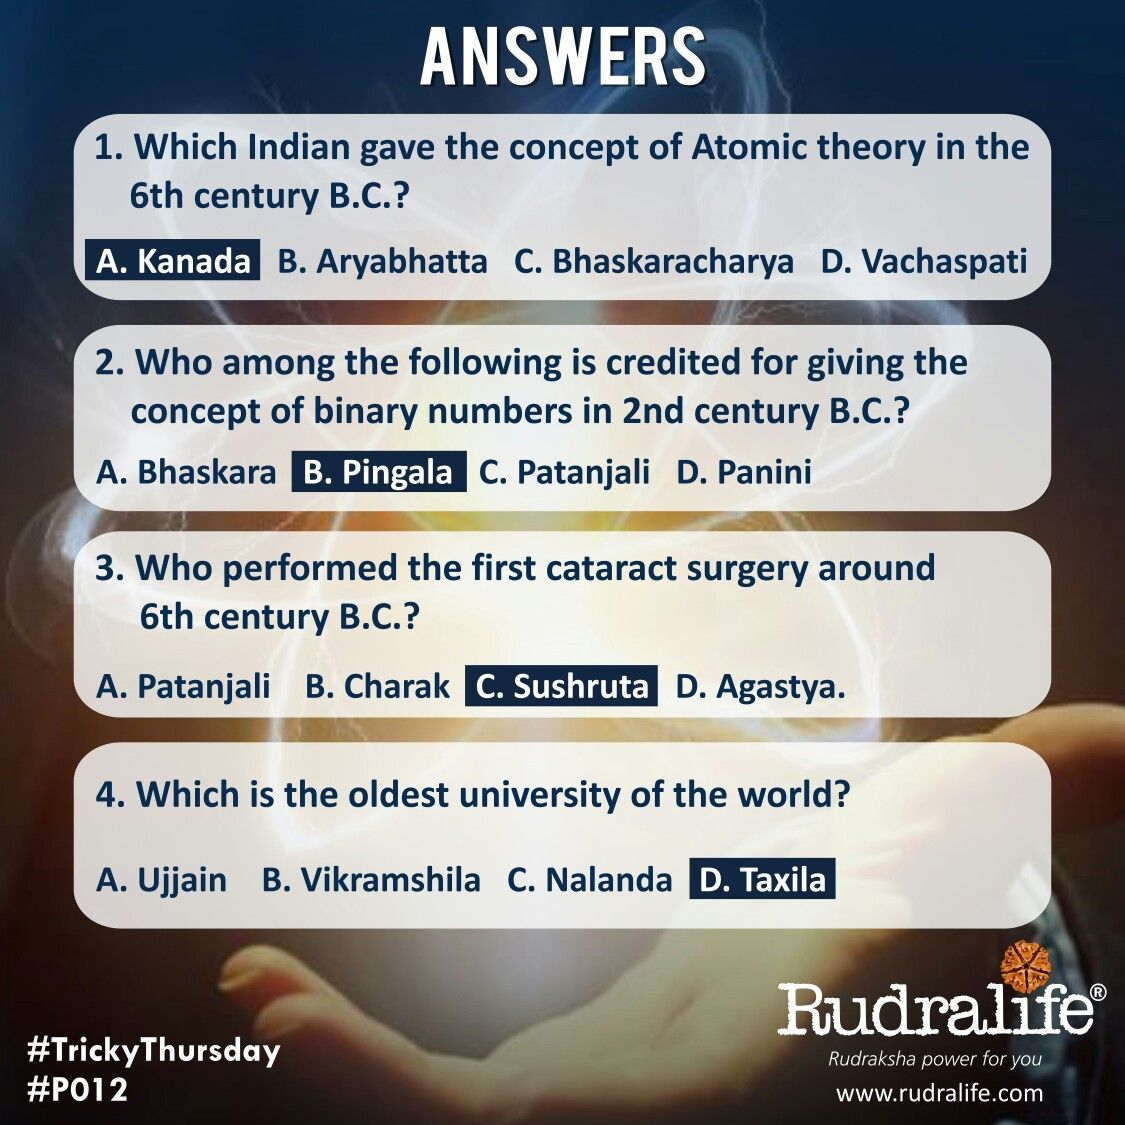 Science Facts General Knowledge: #rudralife #shiva #TrickyThursday #Puzzle